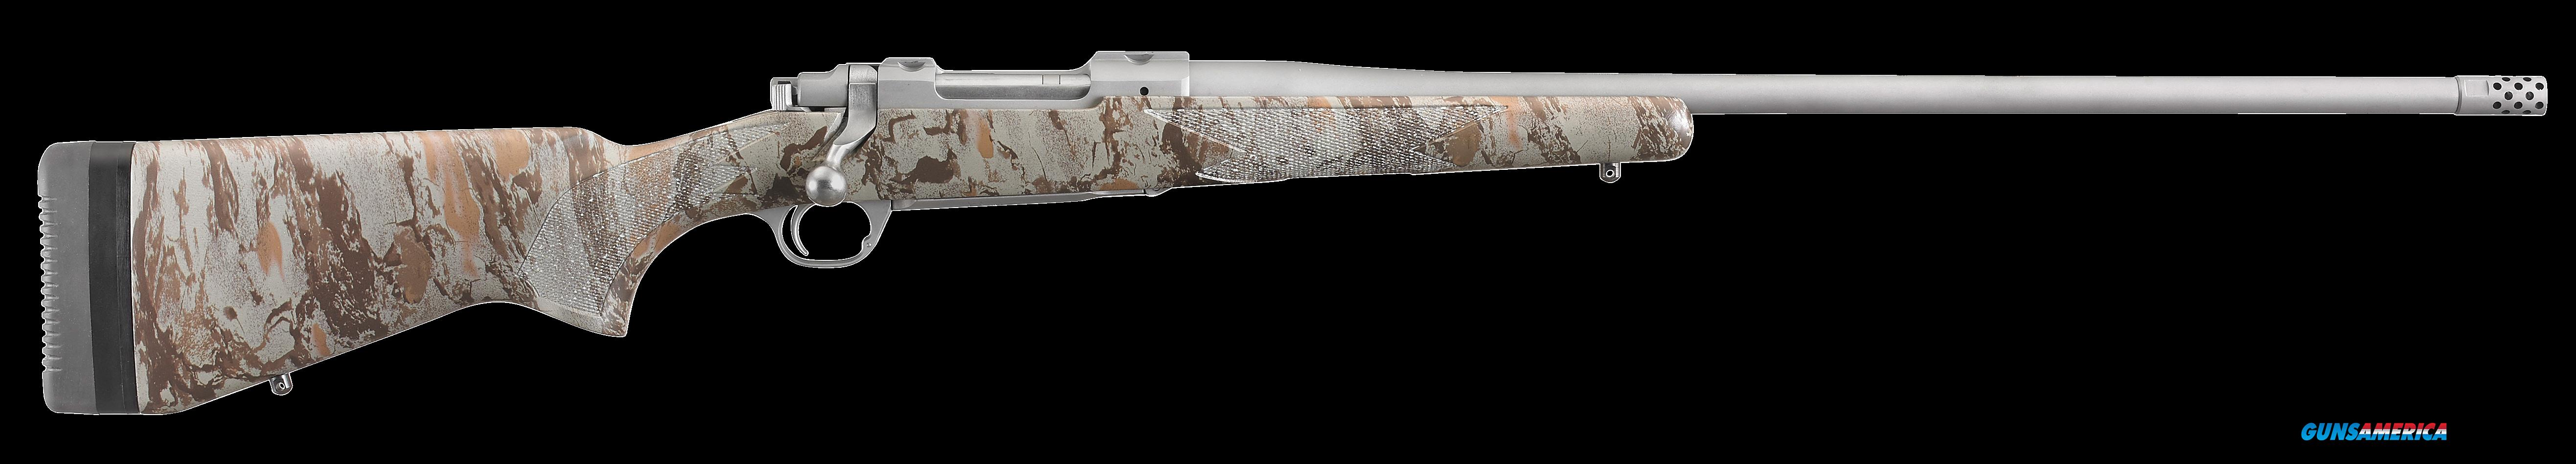 "Ruger 47172 Hawkeye FTW Hunter Bolt 260 Rem 24"" 4+1 Laminate Natural Gear Camo Stk Stainless Steel  Guns > Rifles > R Misc Rifles"